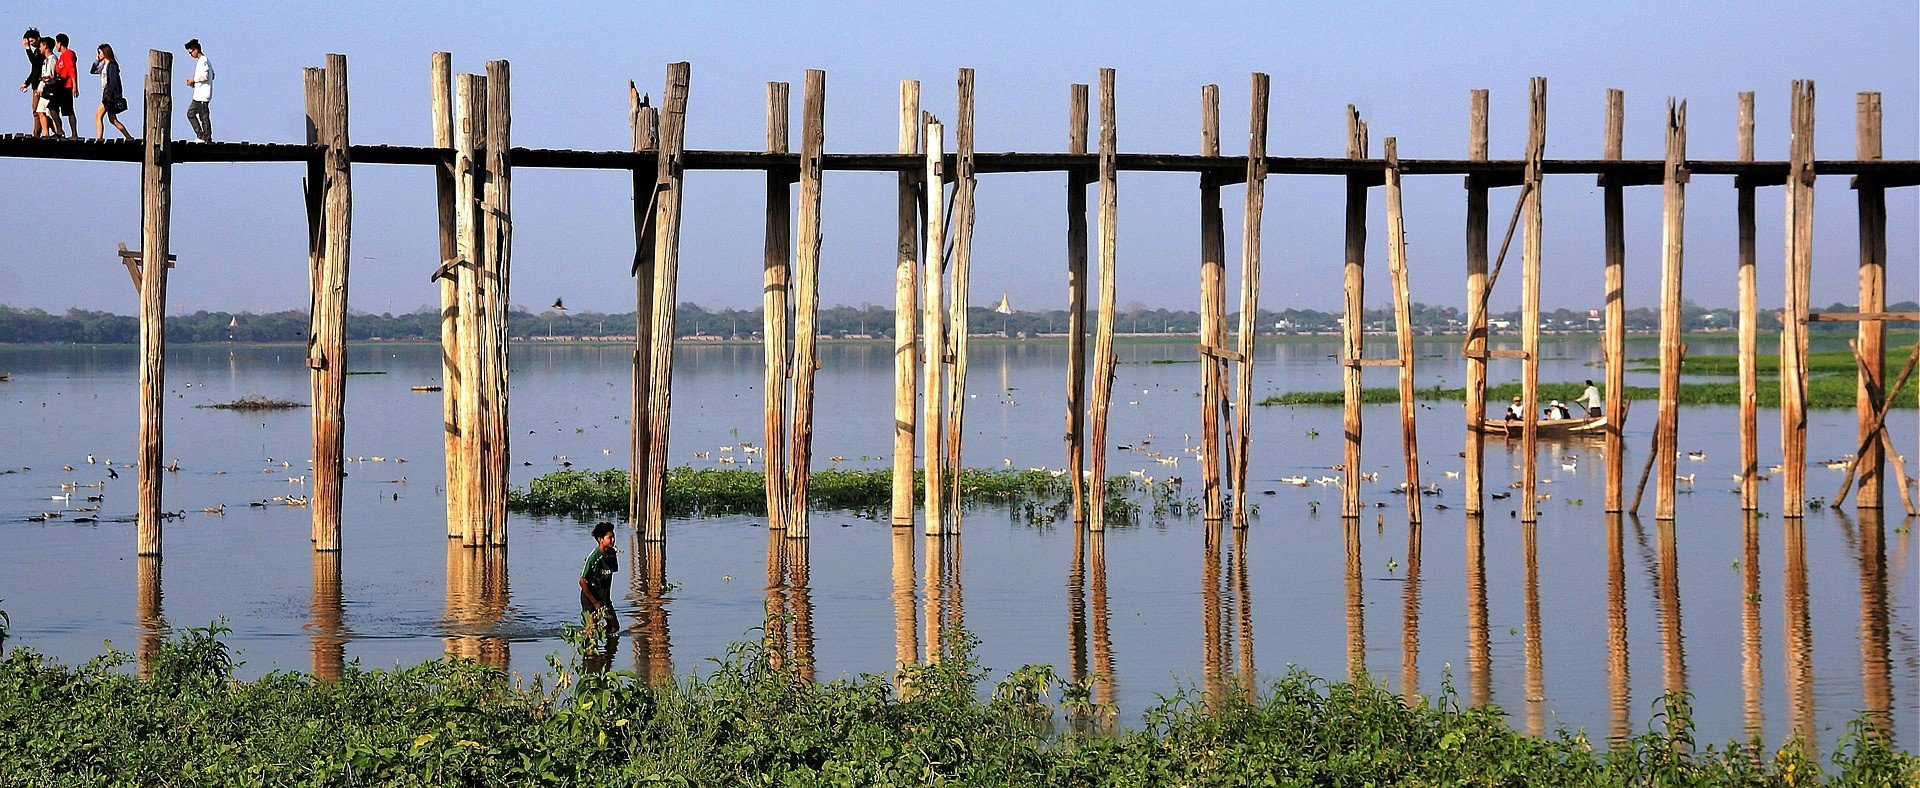 Teak wood supports of U Bein Bridge